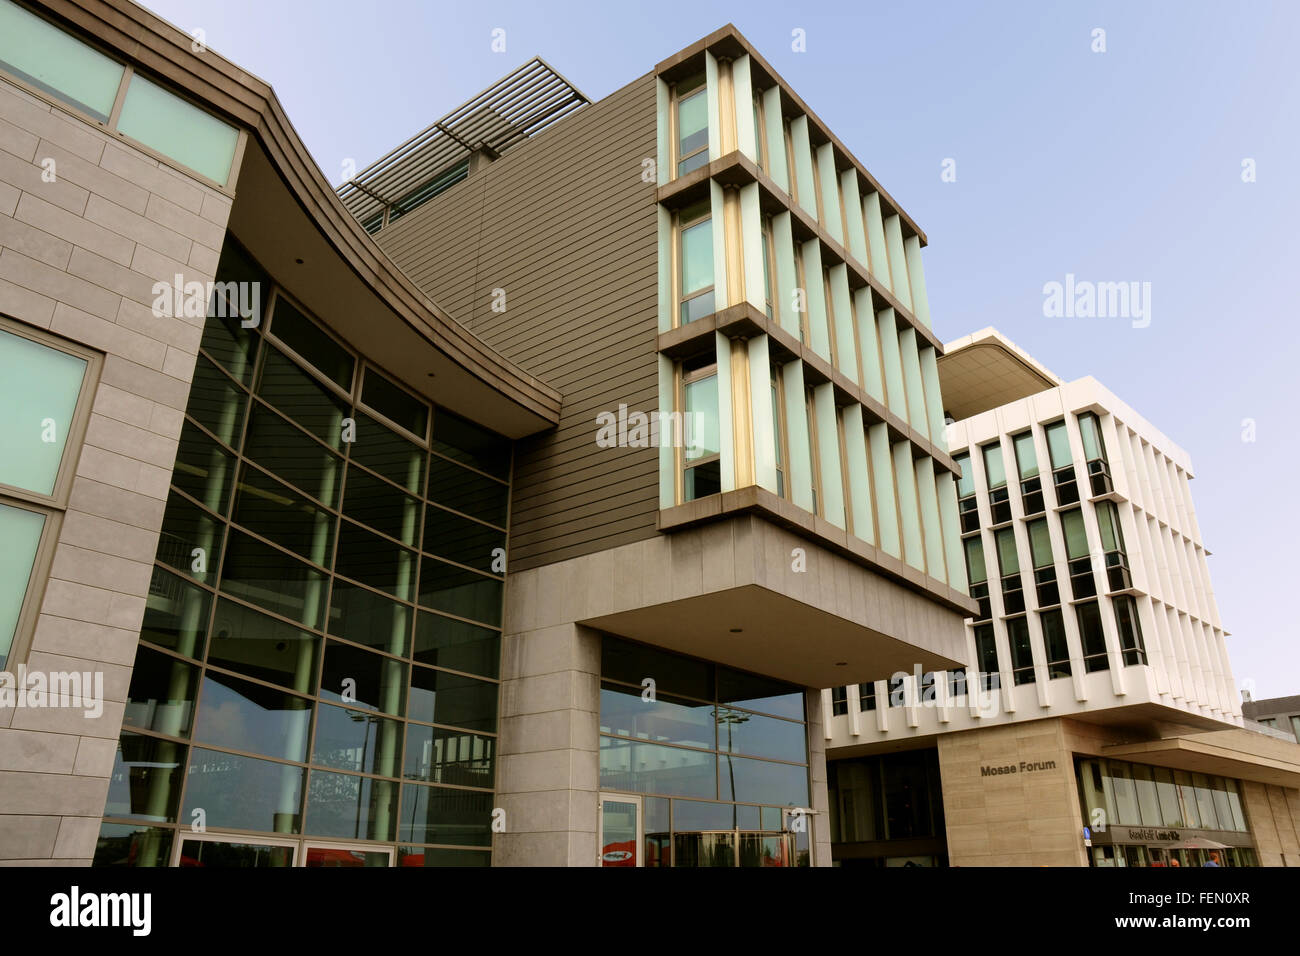 Exterieur of the Mosae Forum Complex (designed by Maastricht architect Jo Coenen). - Stock Image